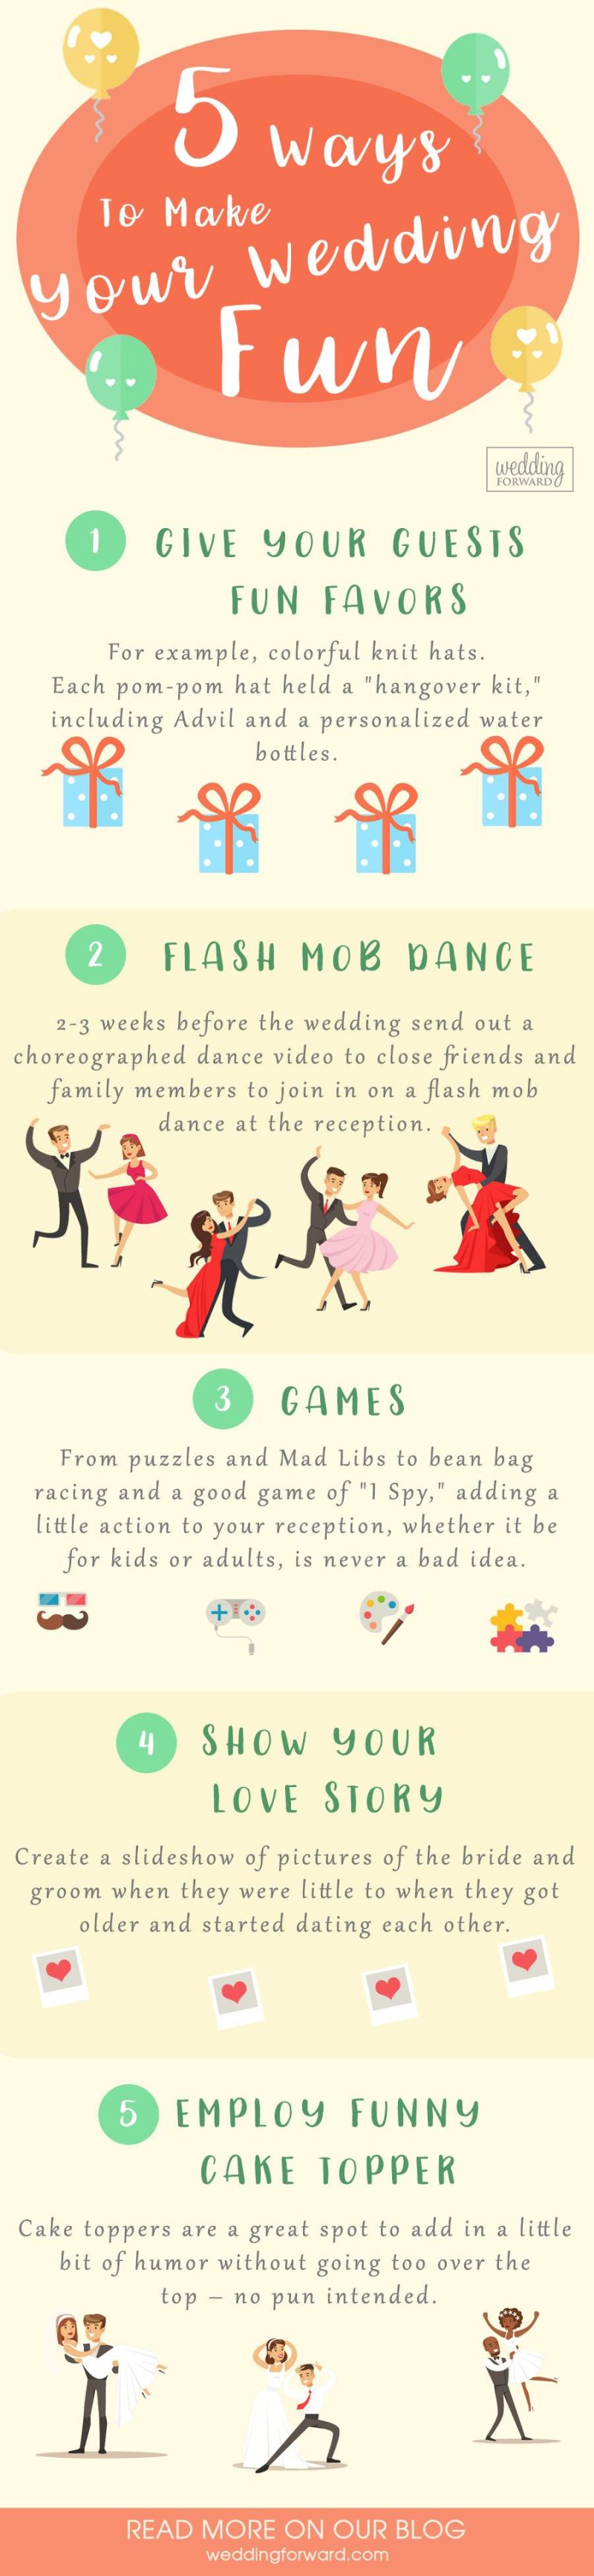 Things To Do At Wedding Reception Without Dancing Invitationsjdi